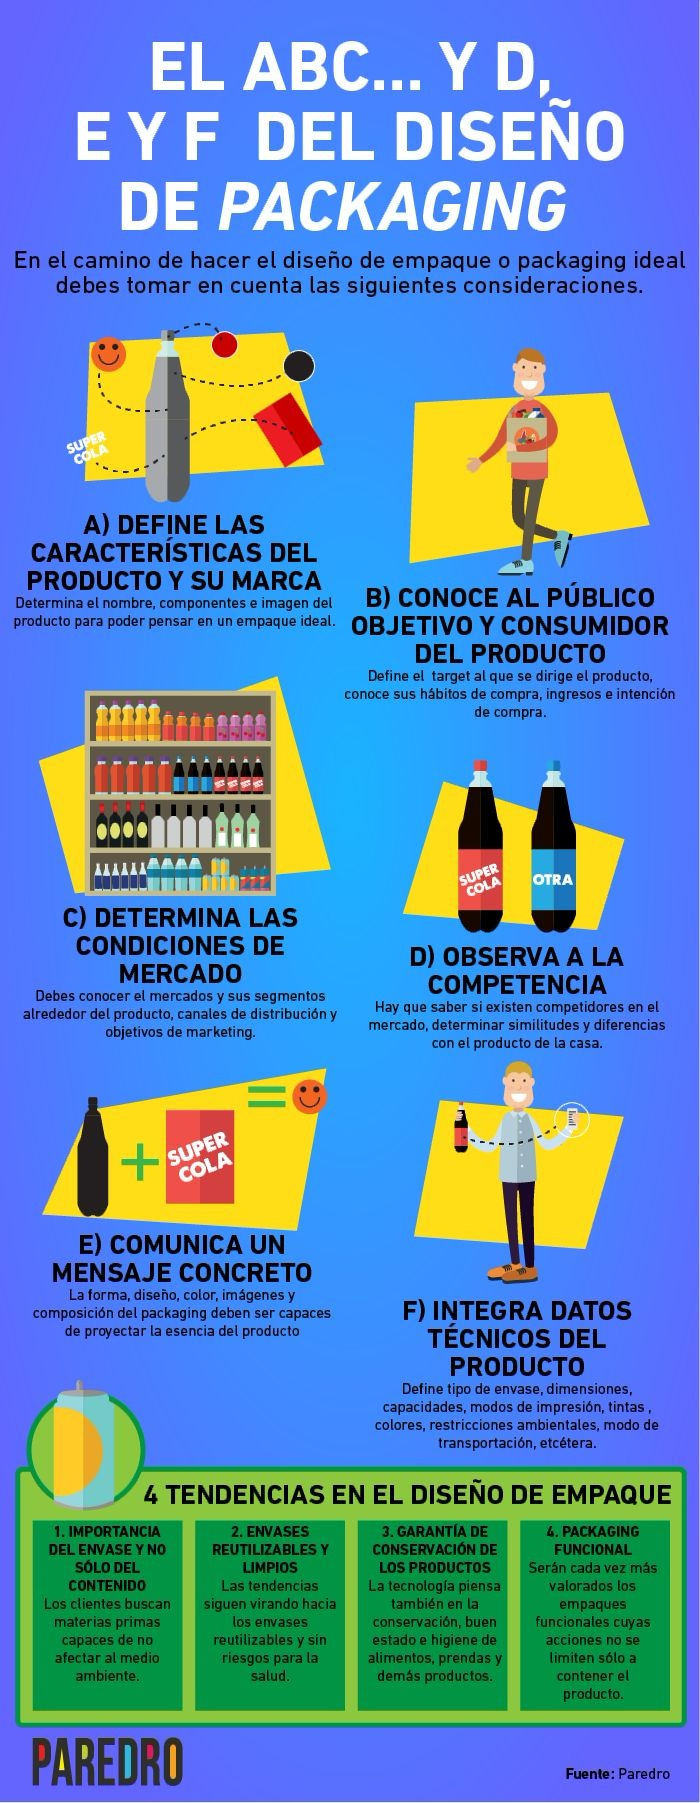 El ABC del diseño de packaging